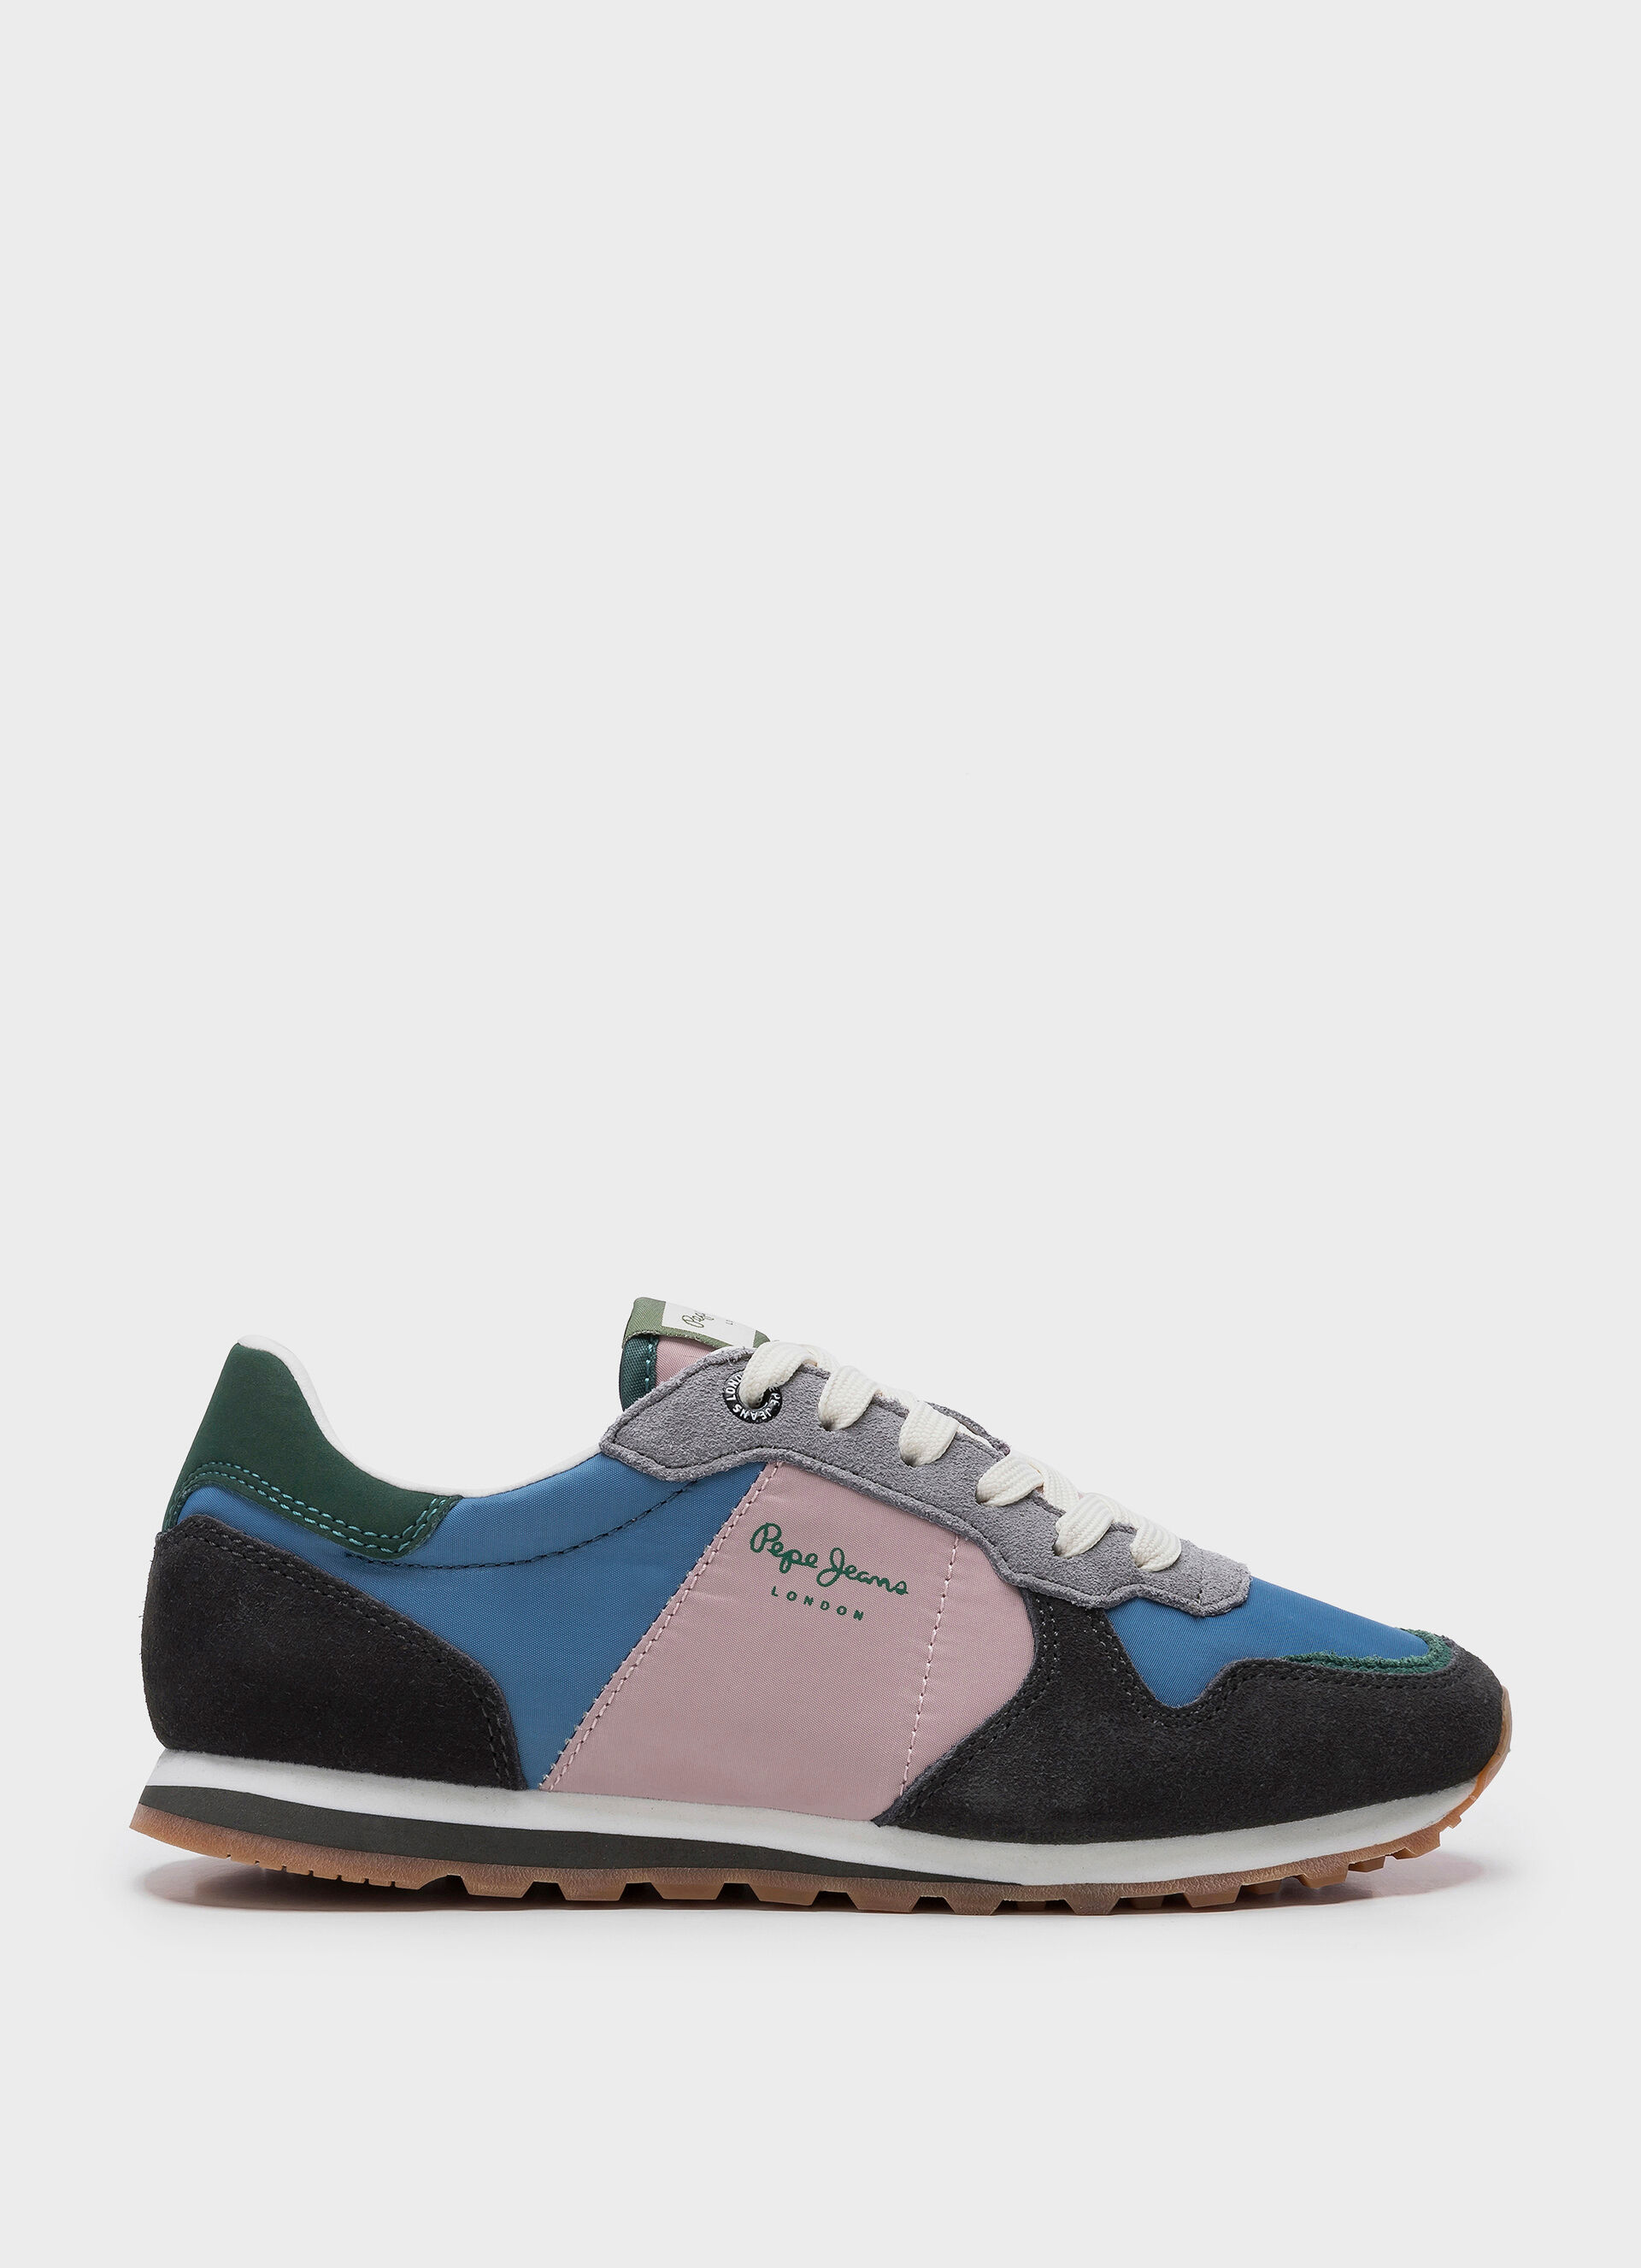 Jeans London Chaussures Pour Pepe Femme 0nO8kwP